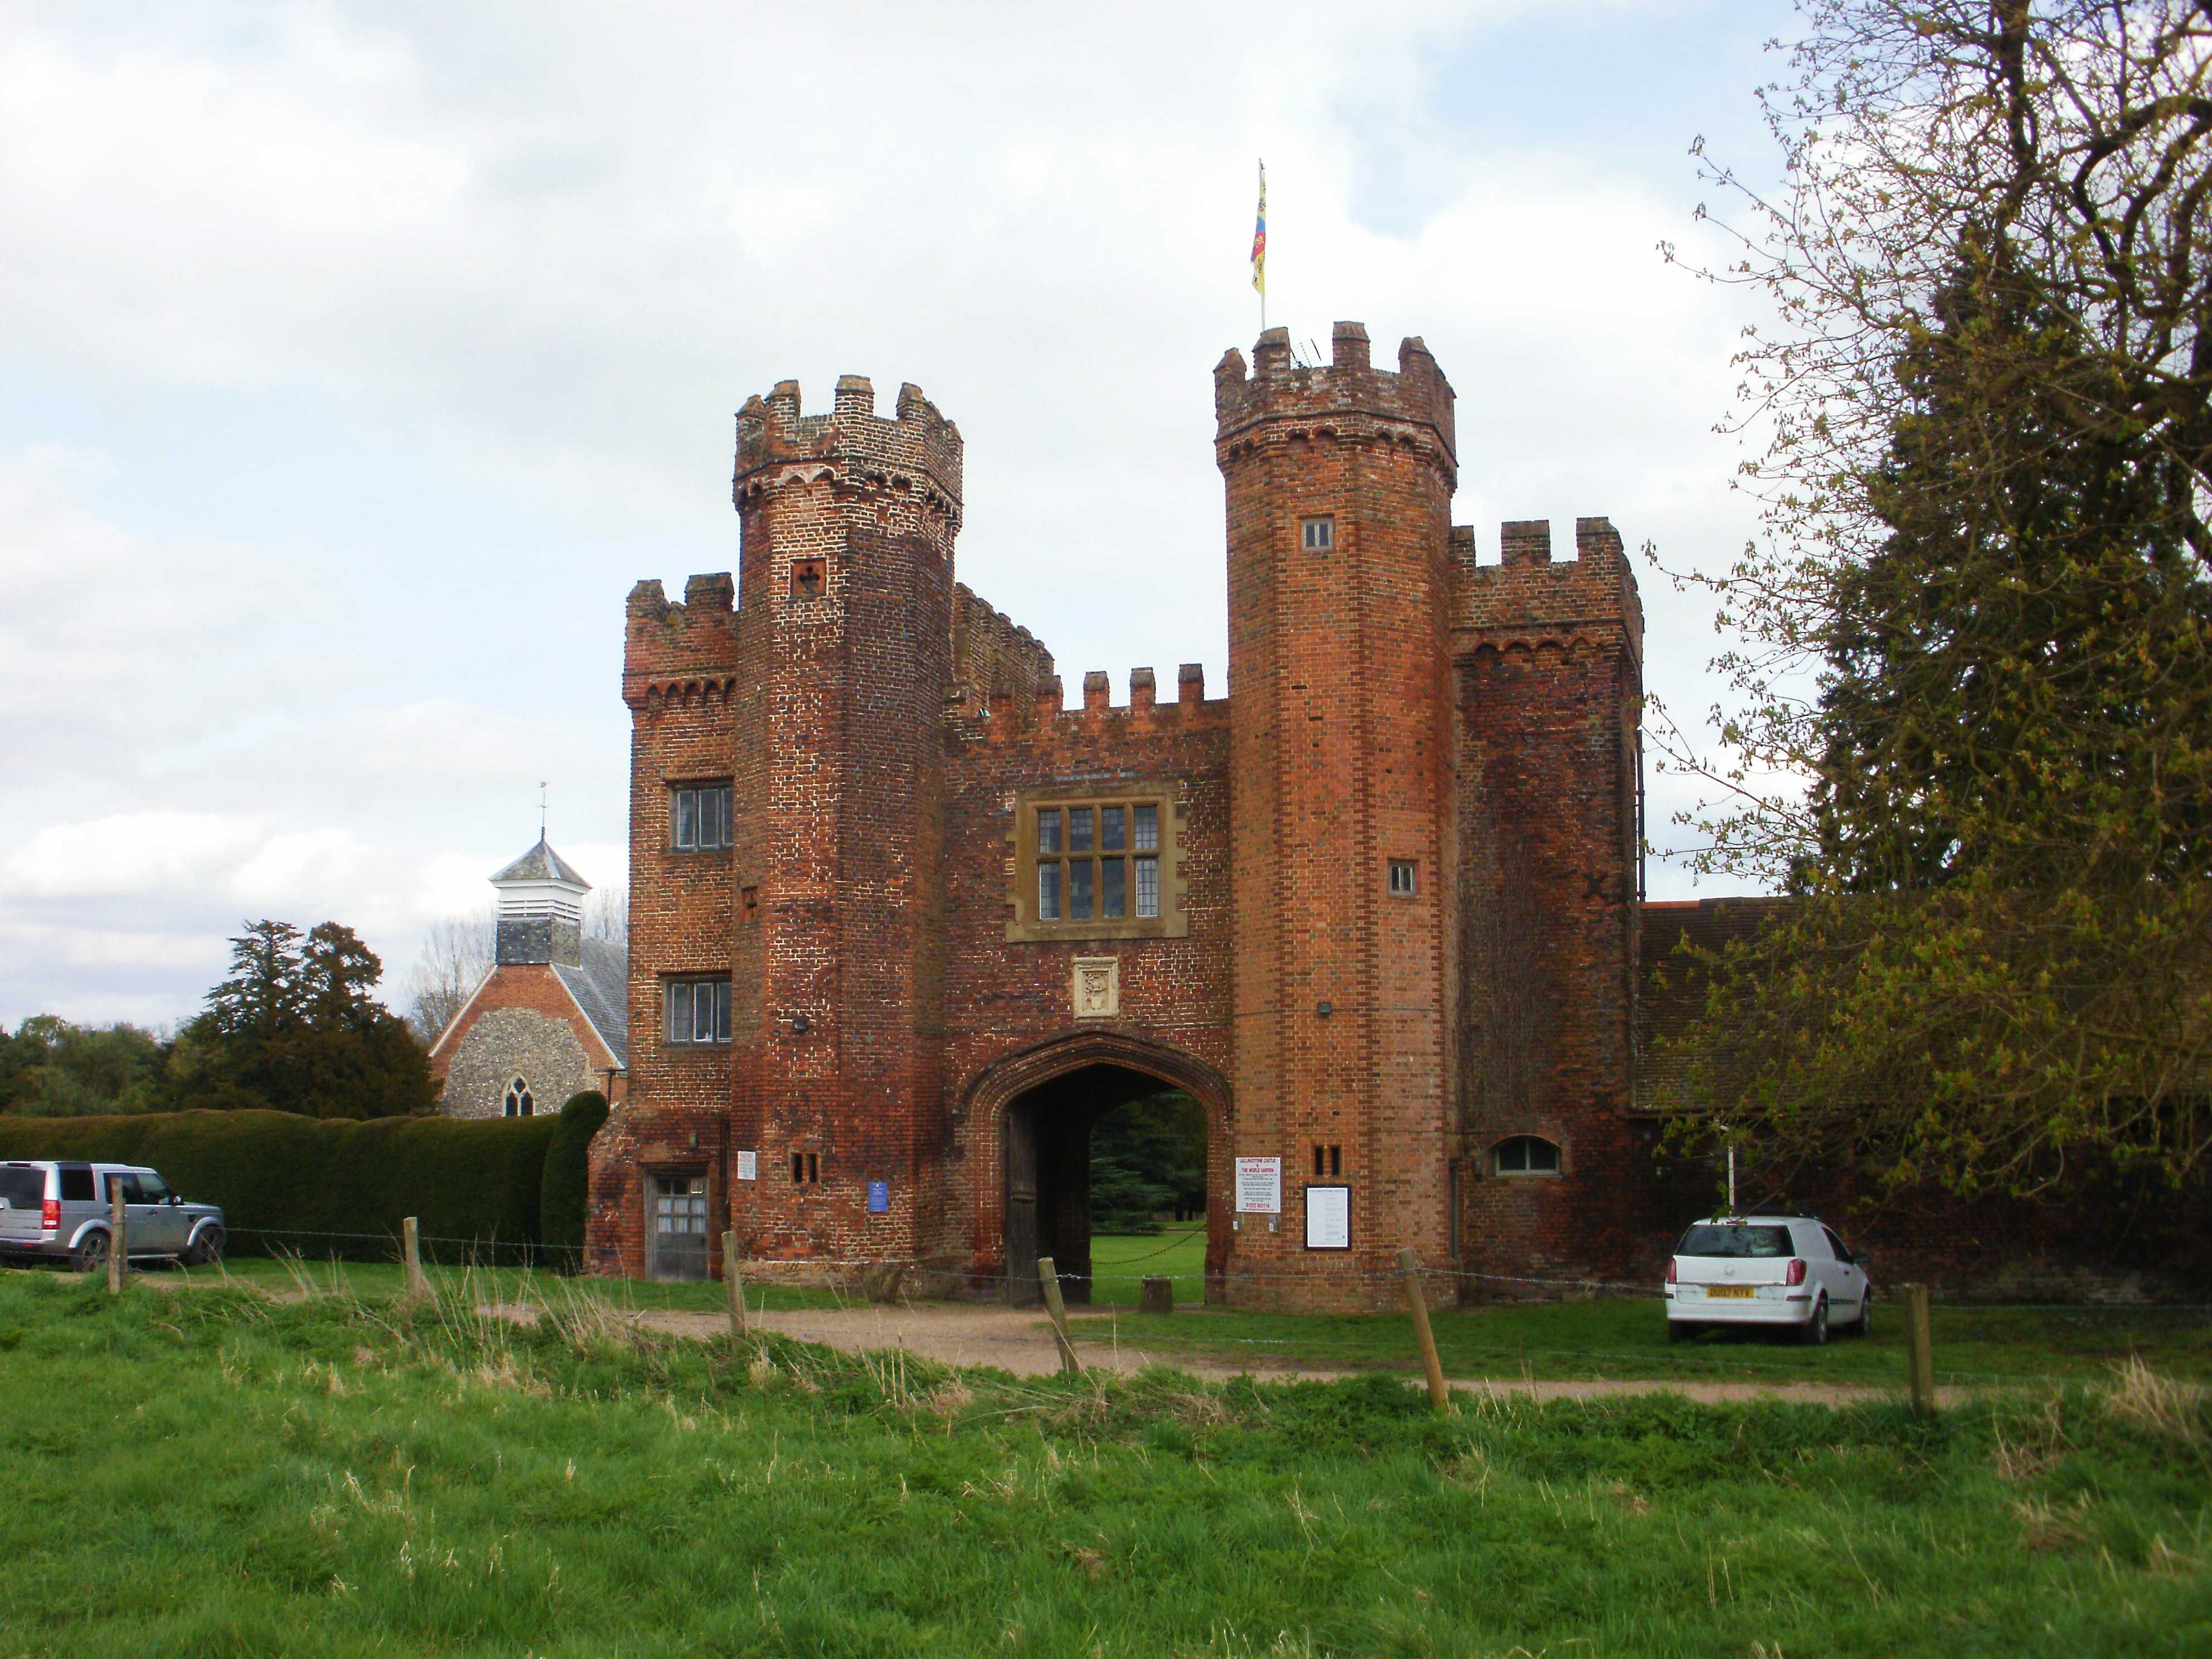 Lullingstone Castle, The World Garden, Dartford